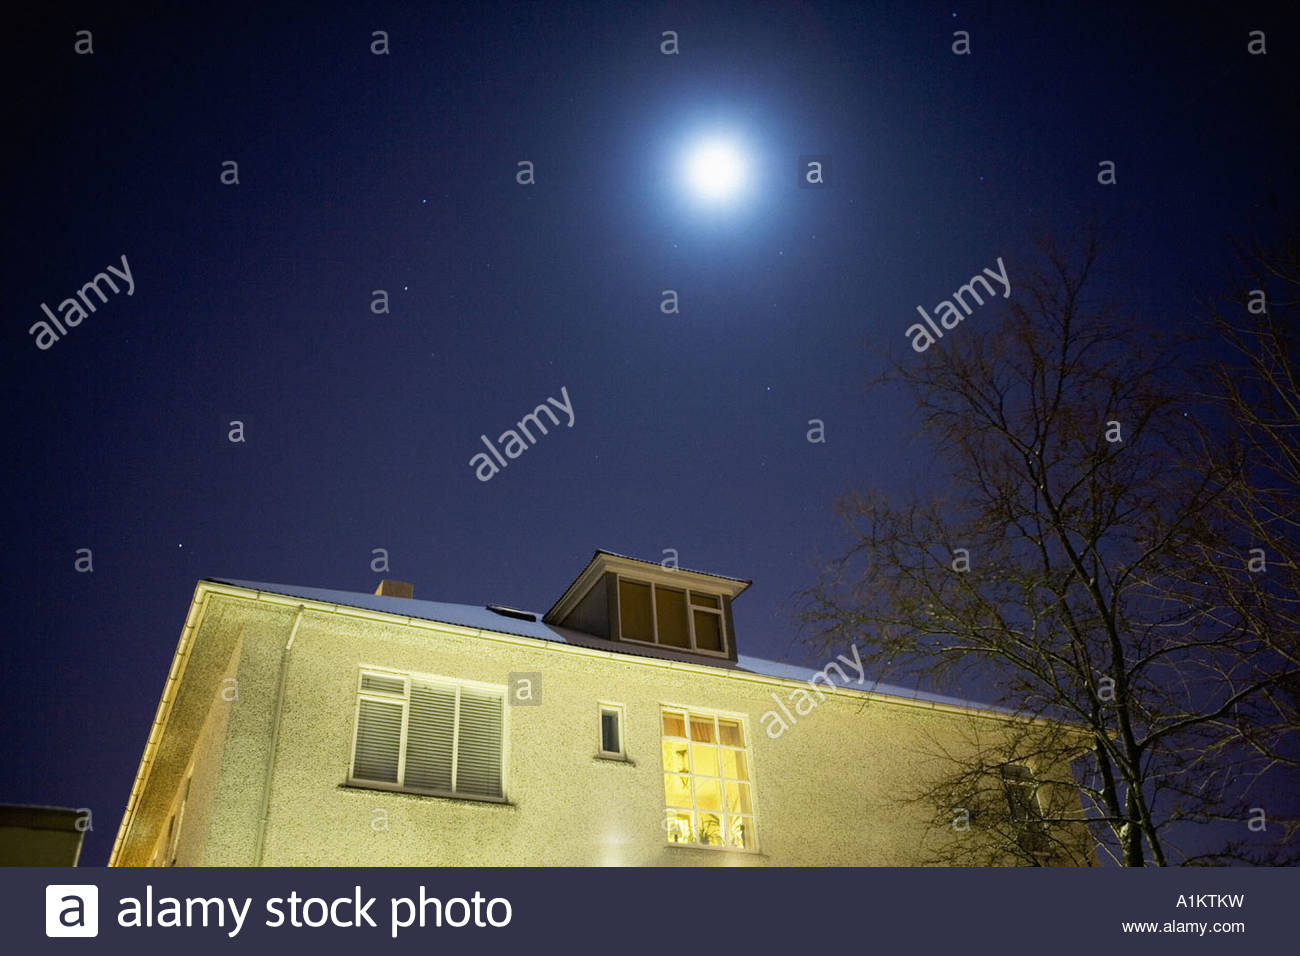 Moon shining over a house in Reykjavik Iceland - Stock Image